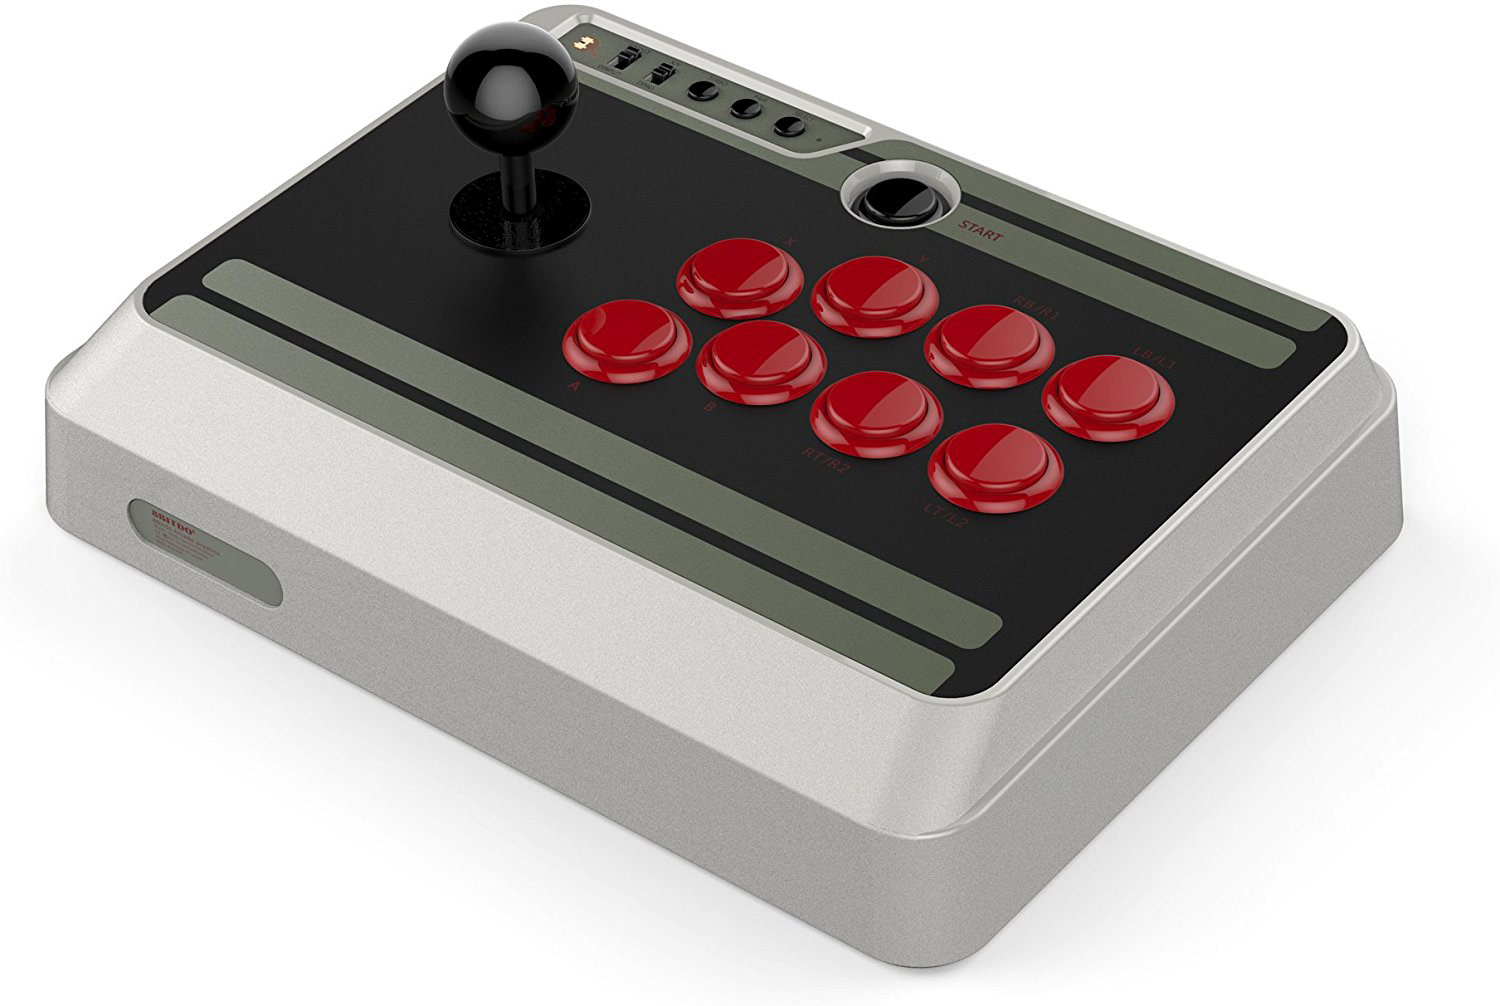 8Bitdo NES30 Arcade Stick 5 out of 11 image gallery